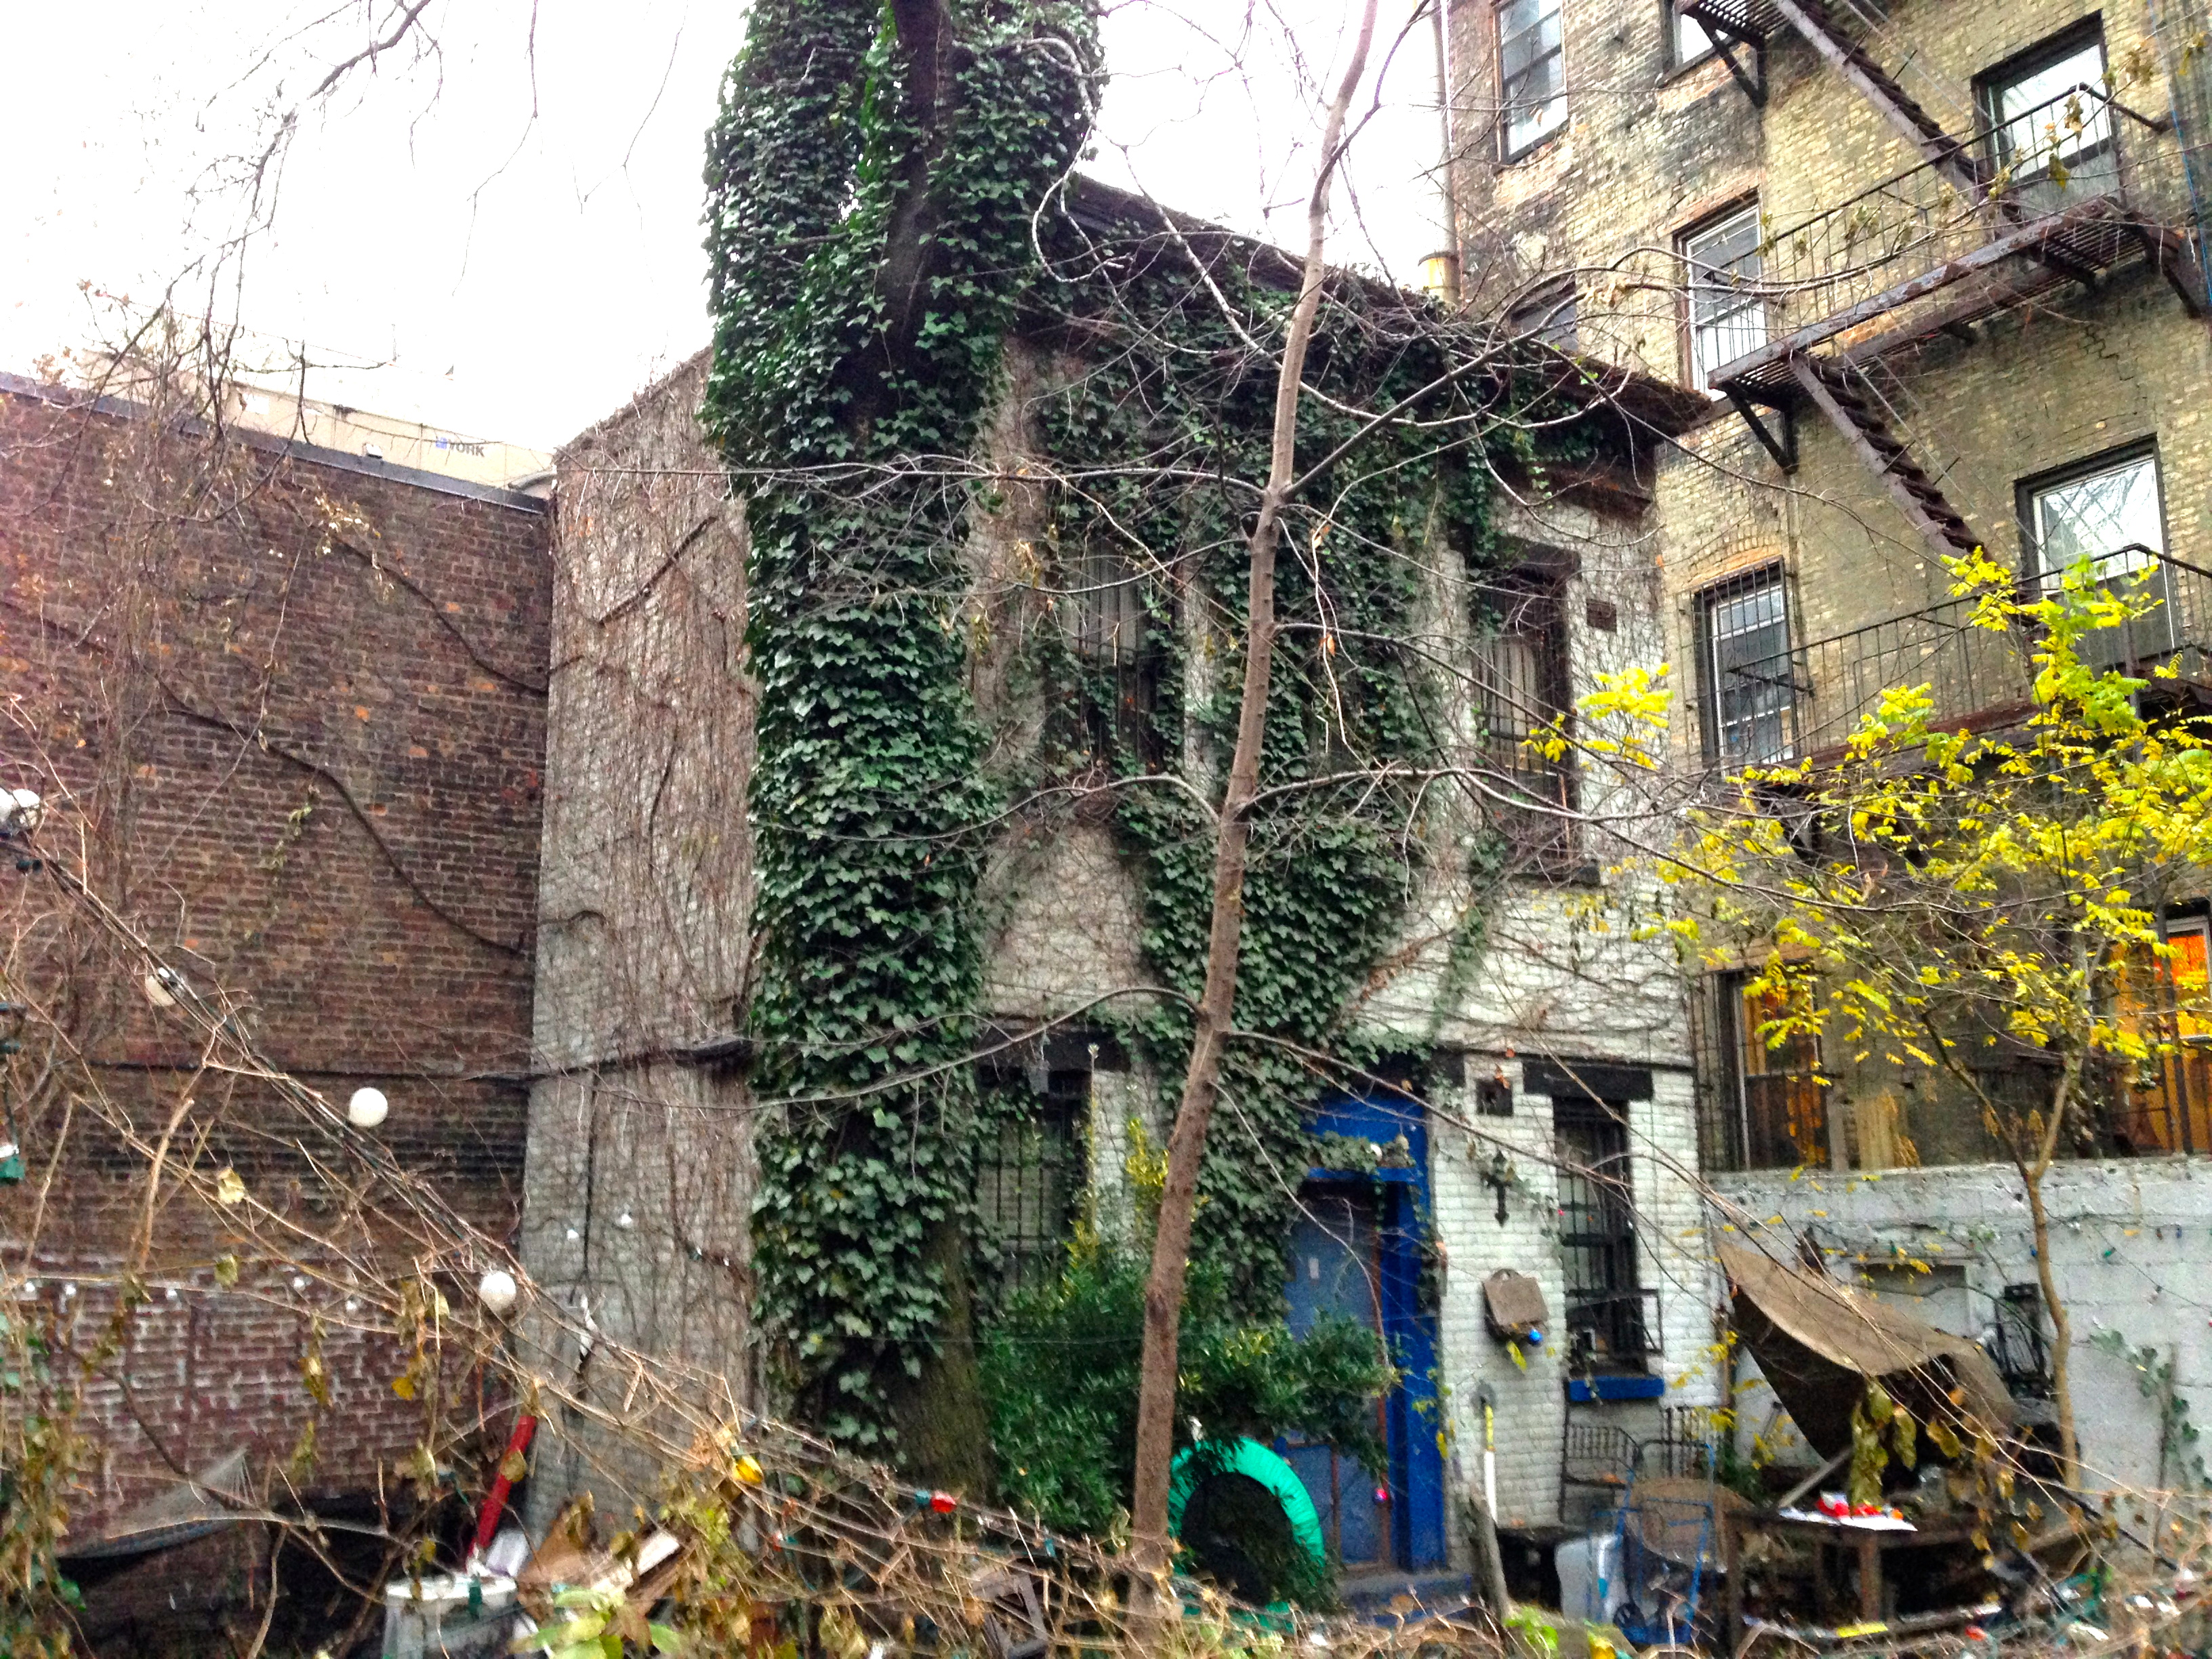 greenwich village back houses